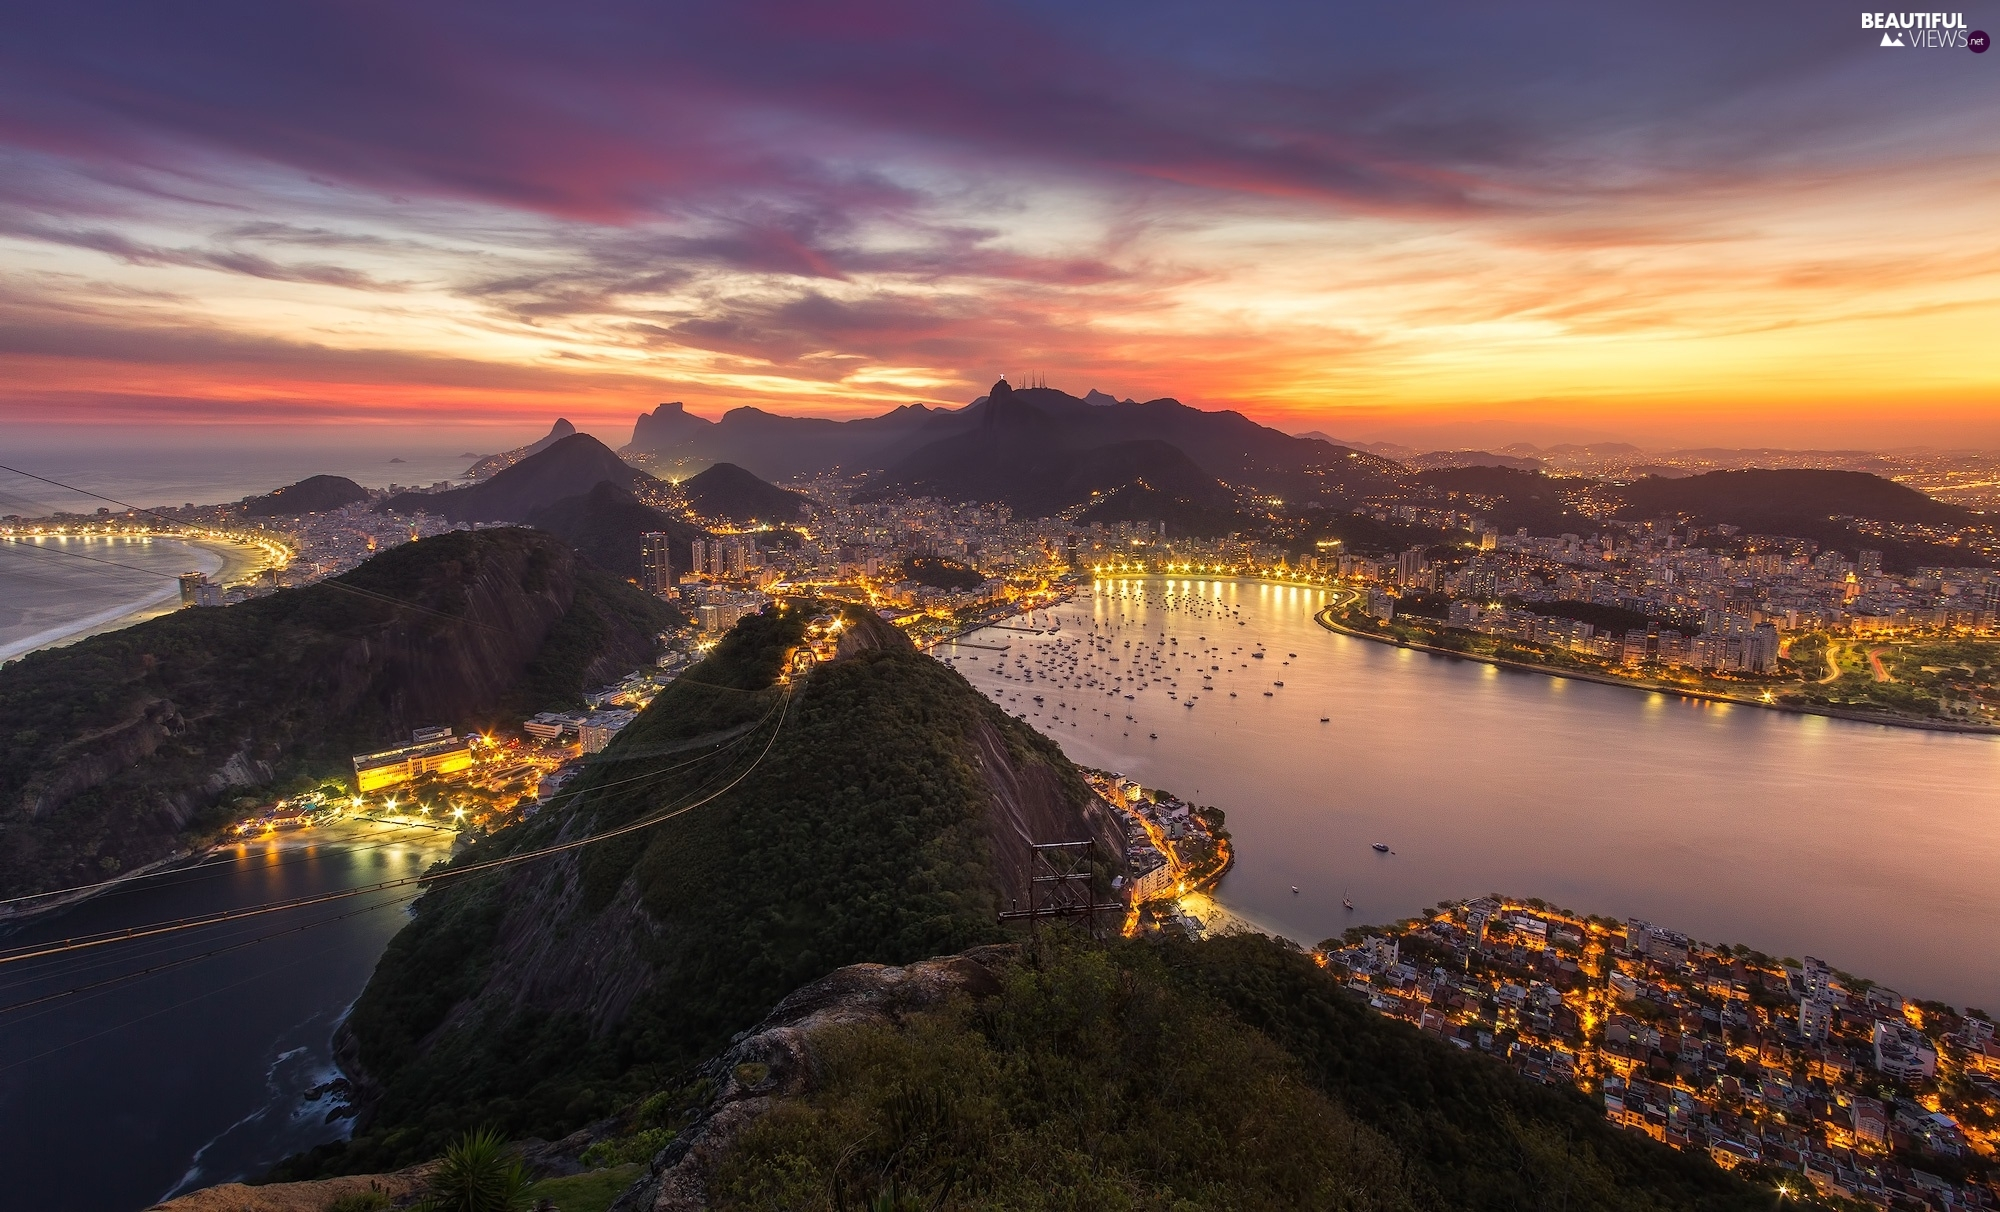 Houses, Rio de Janeiro, Gulf, Great Sunsets, vessels, Brazil, sea, clouds, light, Mountains